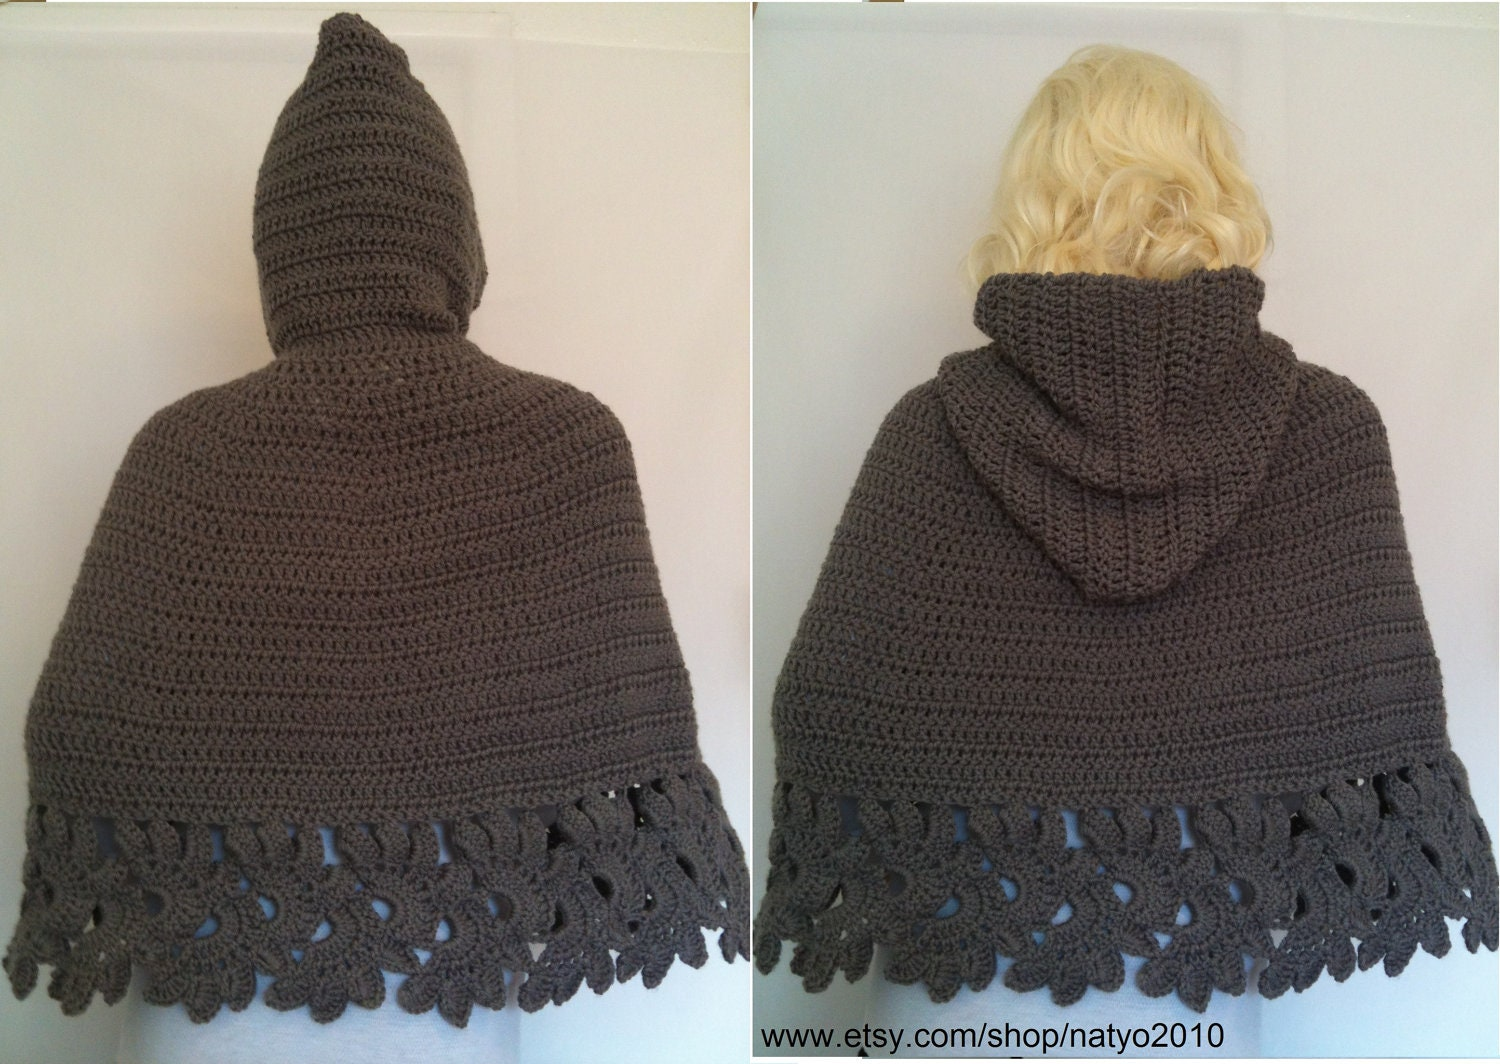 Hooded Cape Knitting Pattern : INSTANT DOWNLOAD Crochet Hooded Cape Pattern PDF by NatalieSpot